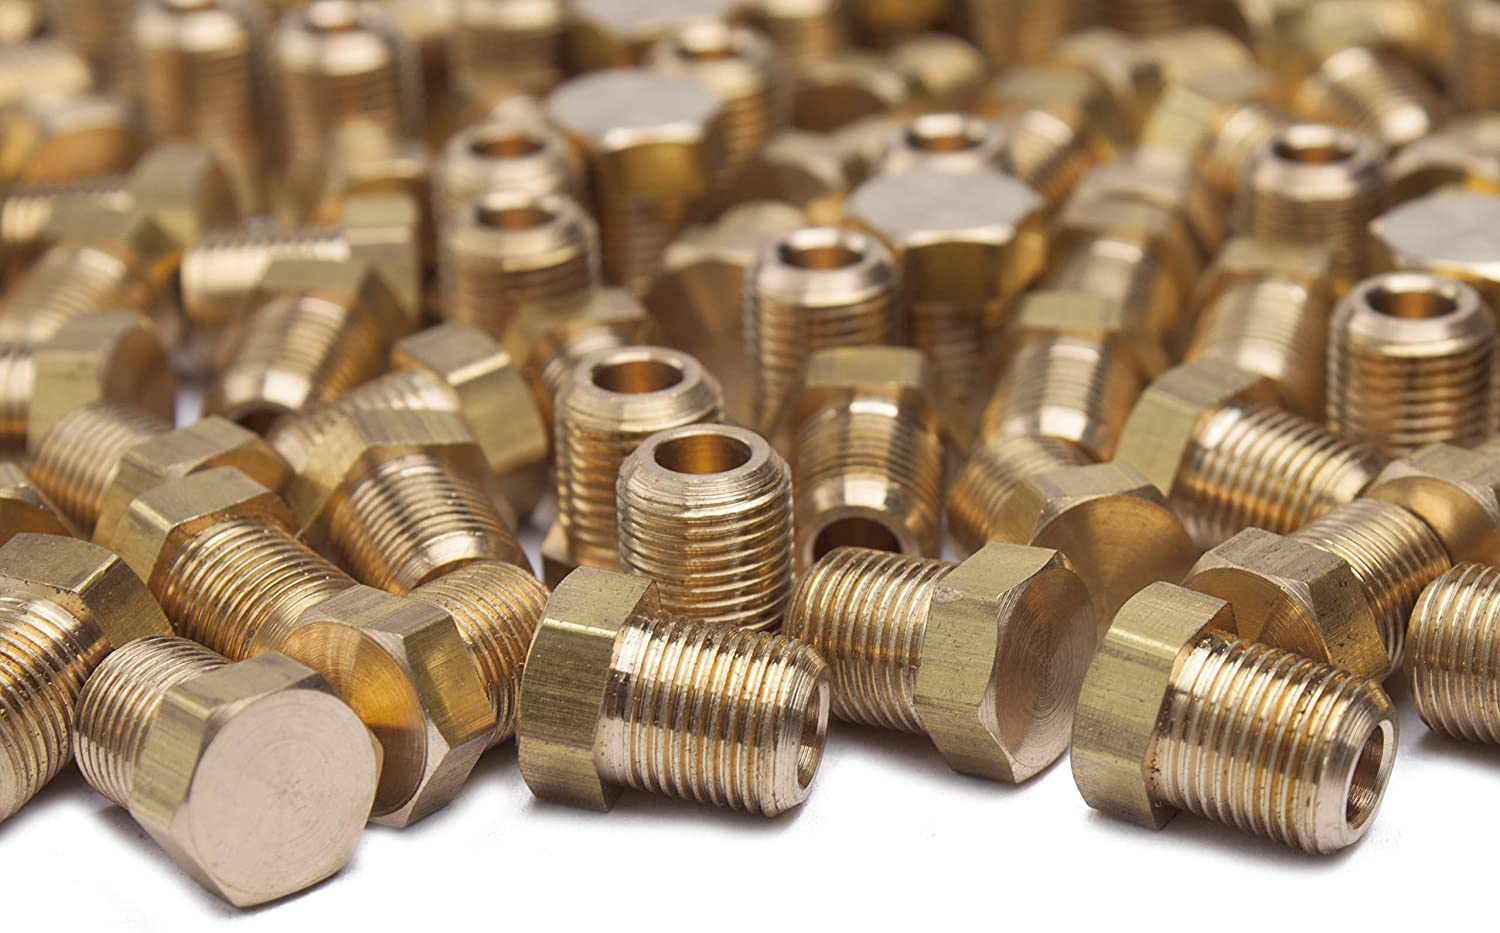 5 pcs 1//8 inch Male NPT Cored Hex Head Plug Brass Pipe Fitting NPT Fuel Water air